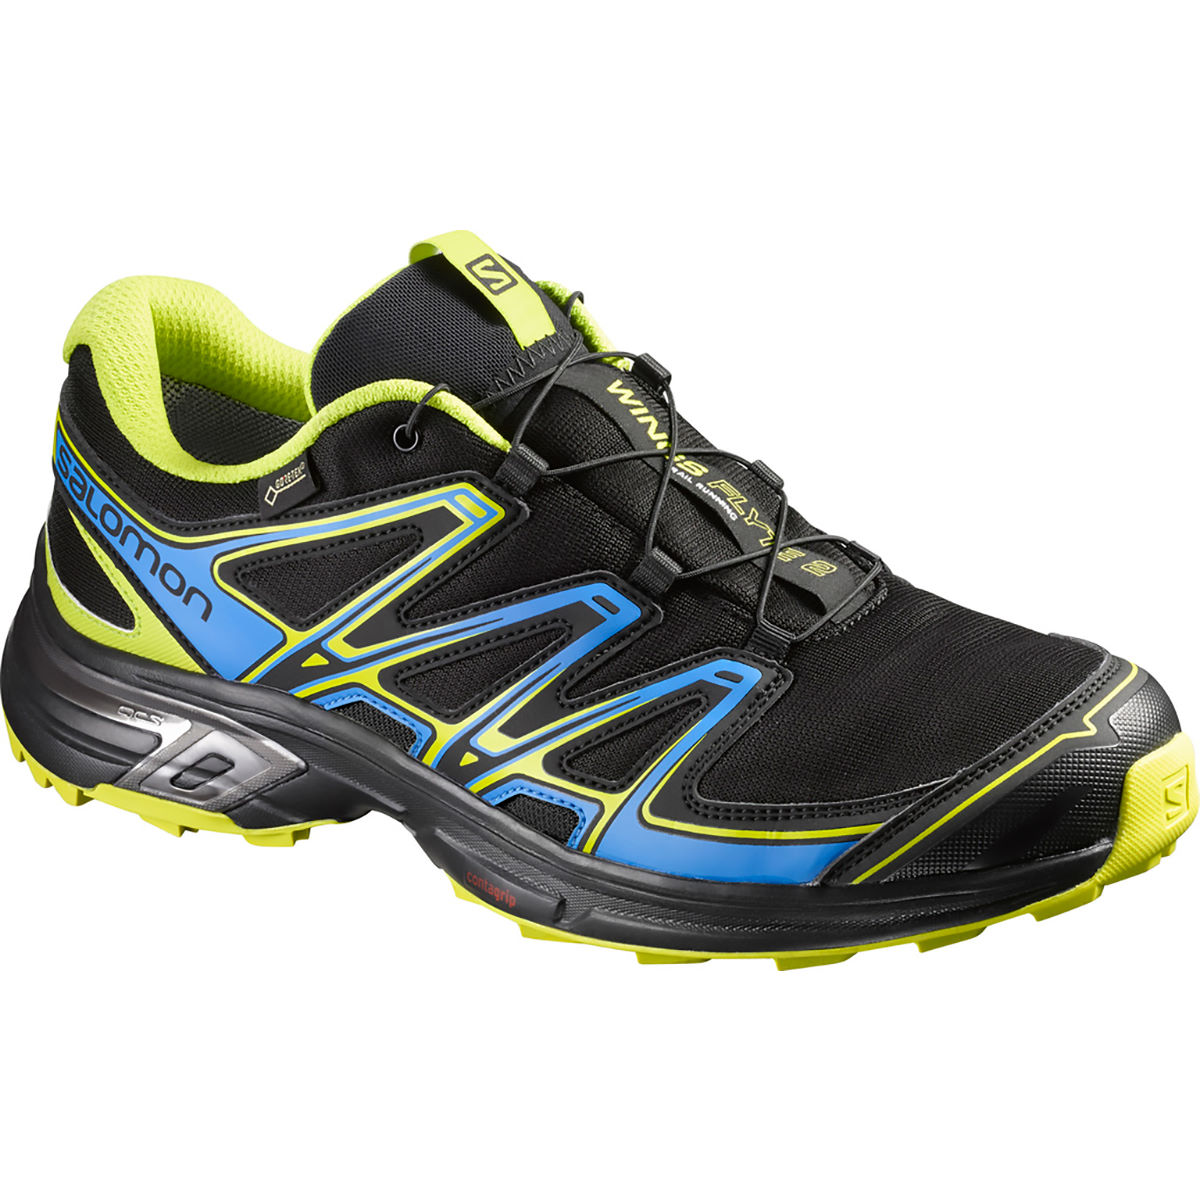 Mountain Running Shoes Uk